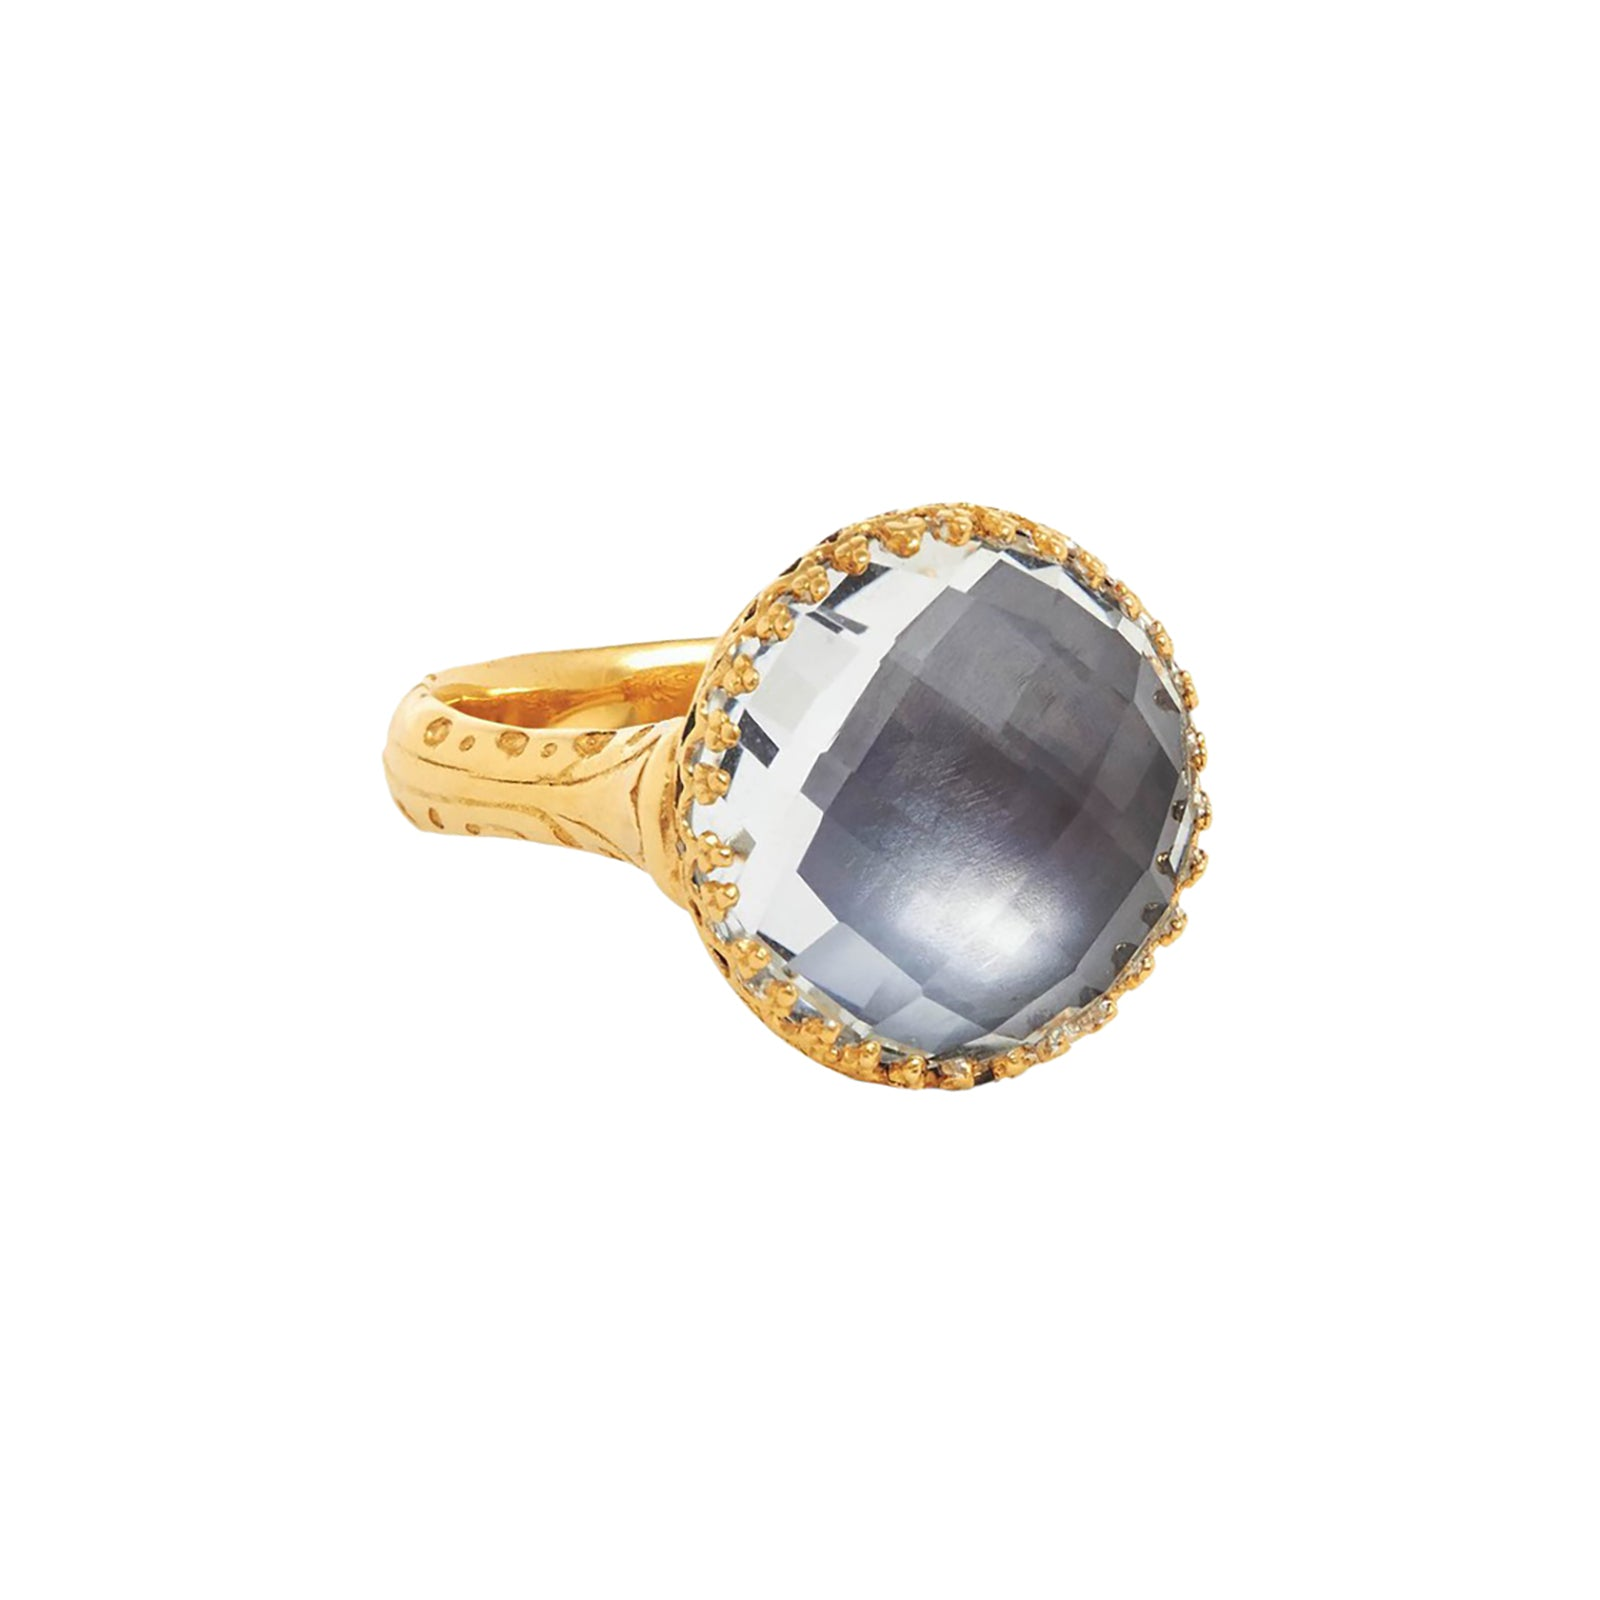 Larkspur & Hawk Olivia Button Ring - Grey - Rings - Broken English Jewelry